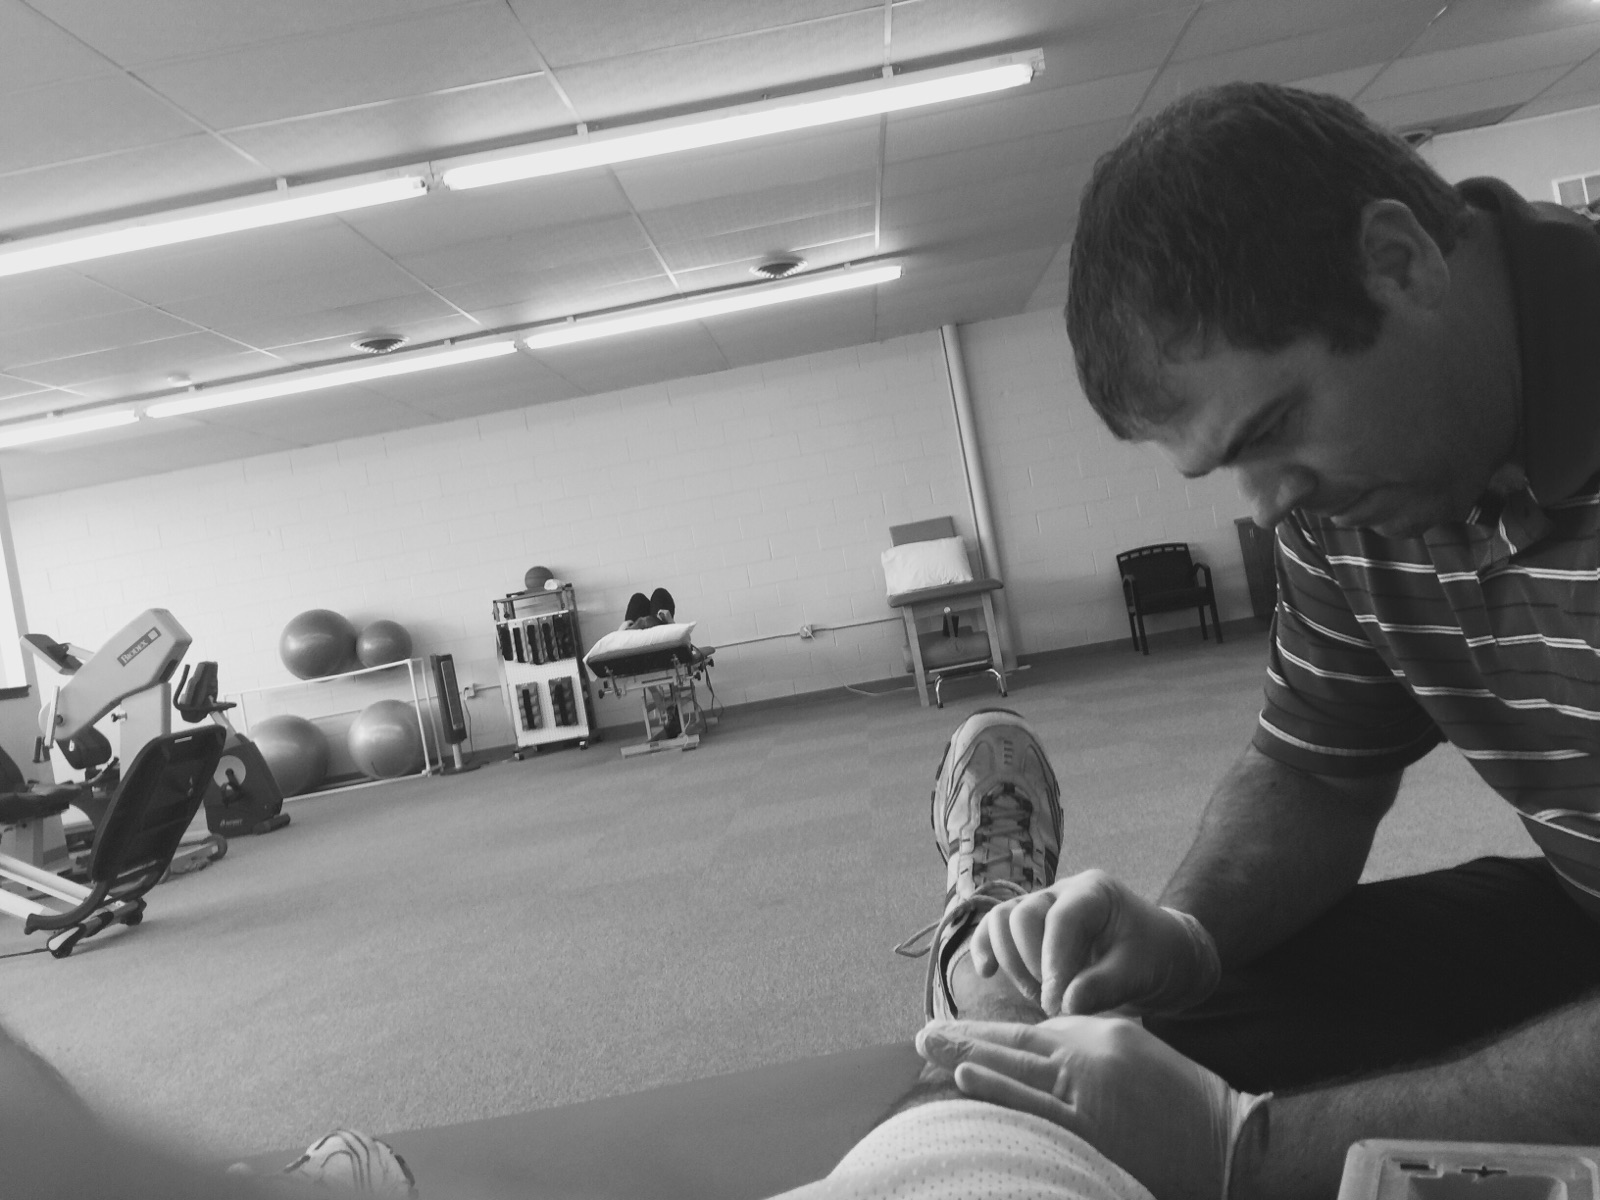 muscular tension and spasm, Ryan Flavory, Dry Needling, patellar tendinitis, Excel Therapy Oklahoma, chronic pain, Neck pain, Back Pain, Shoulder Pain, Tennis Elbow, Golfers Elbow, Headaches, Hip Pain, Gluteal Pain, Knee Pain, Achilles Tendonitis, Tendonosis, Plantar Fasciitis, Sciatica, Muscular Strains, Ligament Sprains, Chronic Pain, Athletic Performance